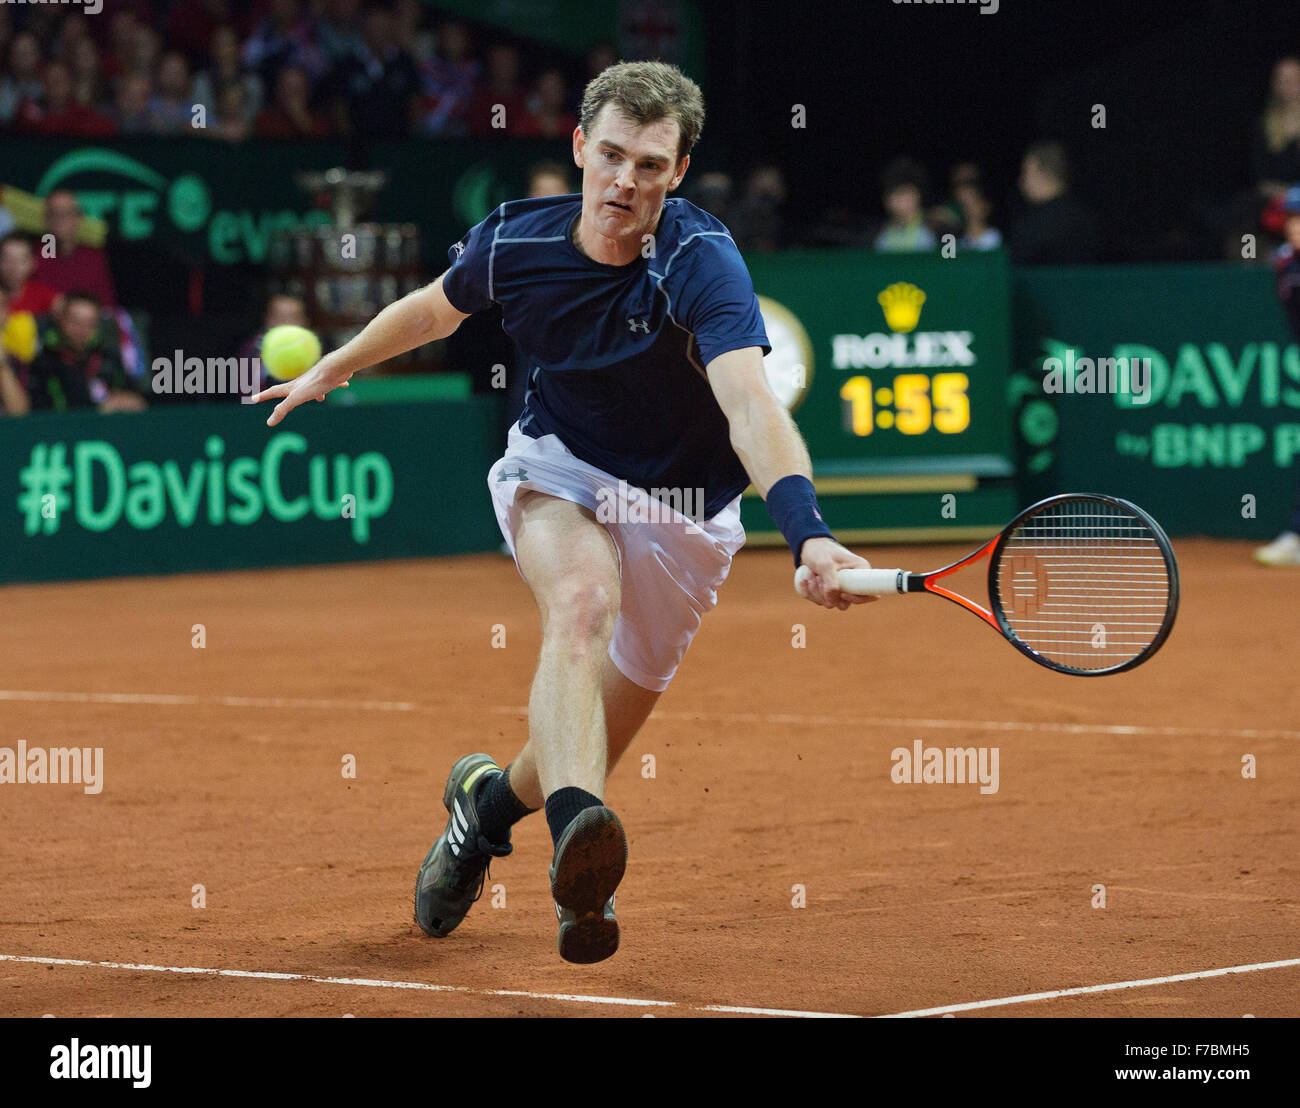 Gent, Belgium, November 28, 2015, Davis Cup Final, Belgium-Great Britain, day two, doubles match, Jamie Murray (GBR) - Stock Image